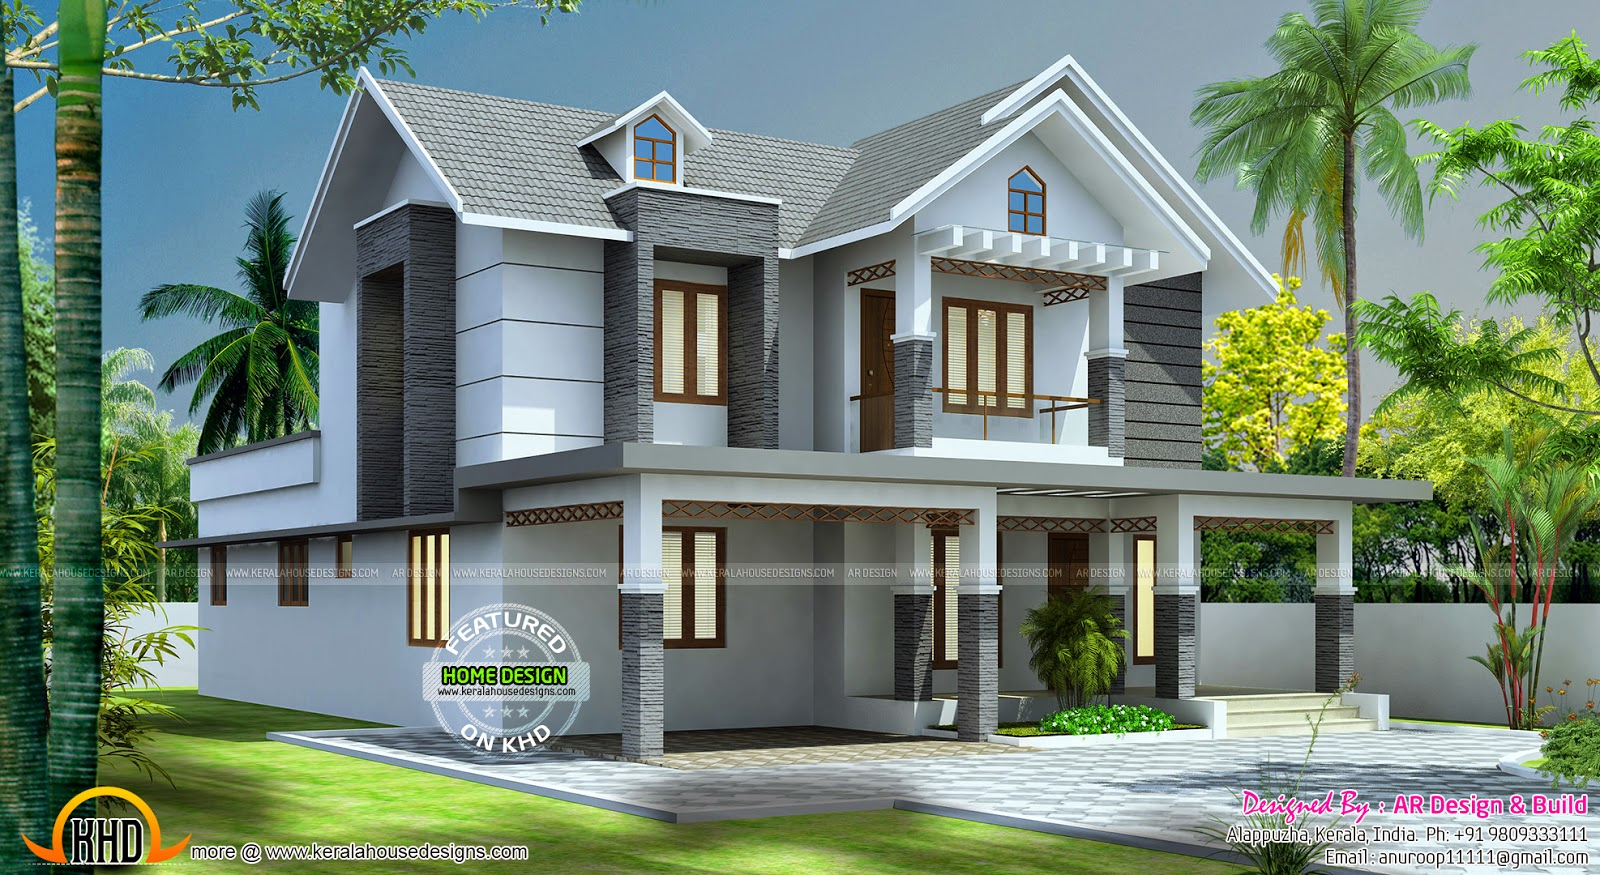 Beautiful 2545 sq ft home design kerala home design and for Beautiful house designs pictures